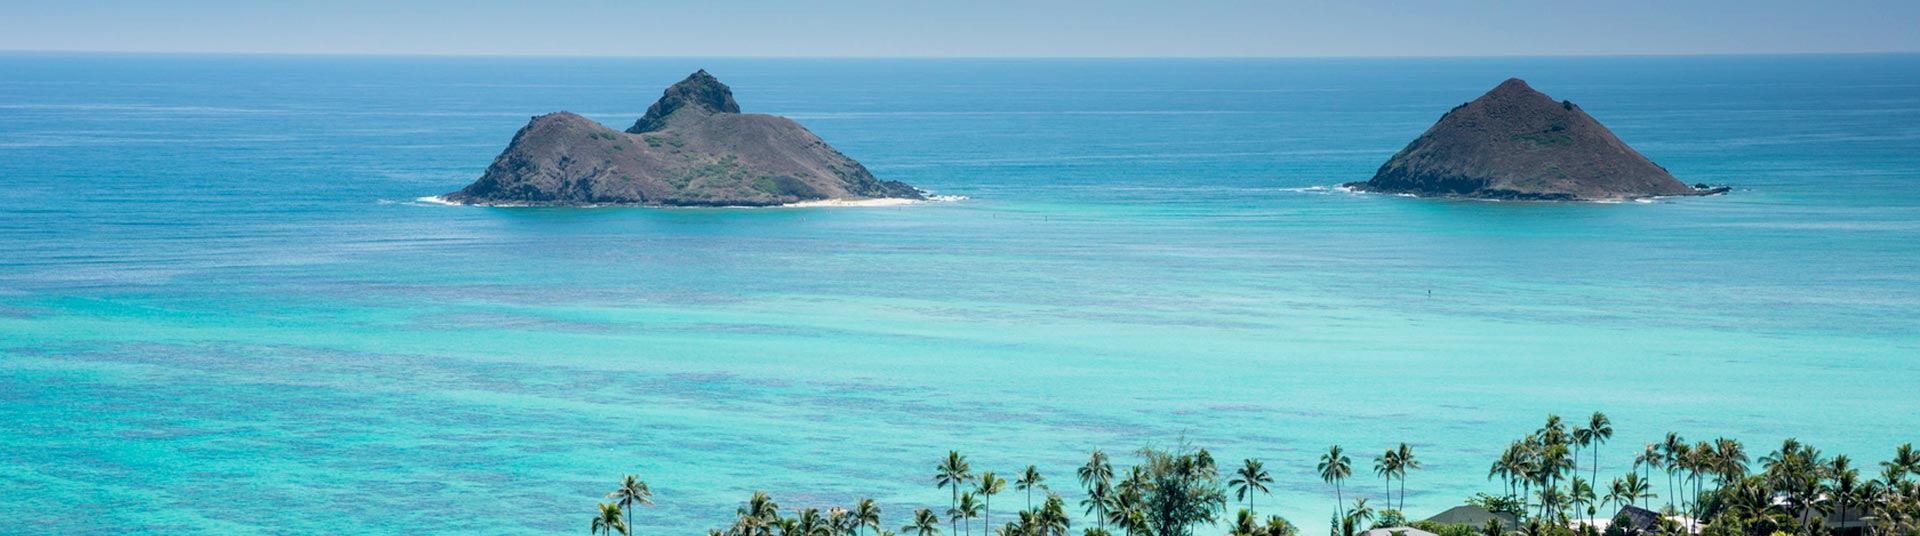 Vol hawaii billet avion hawaii pas cher avec for Reserver pas cher